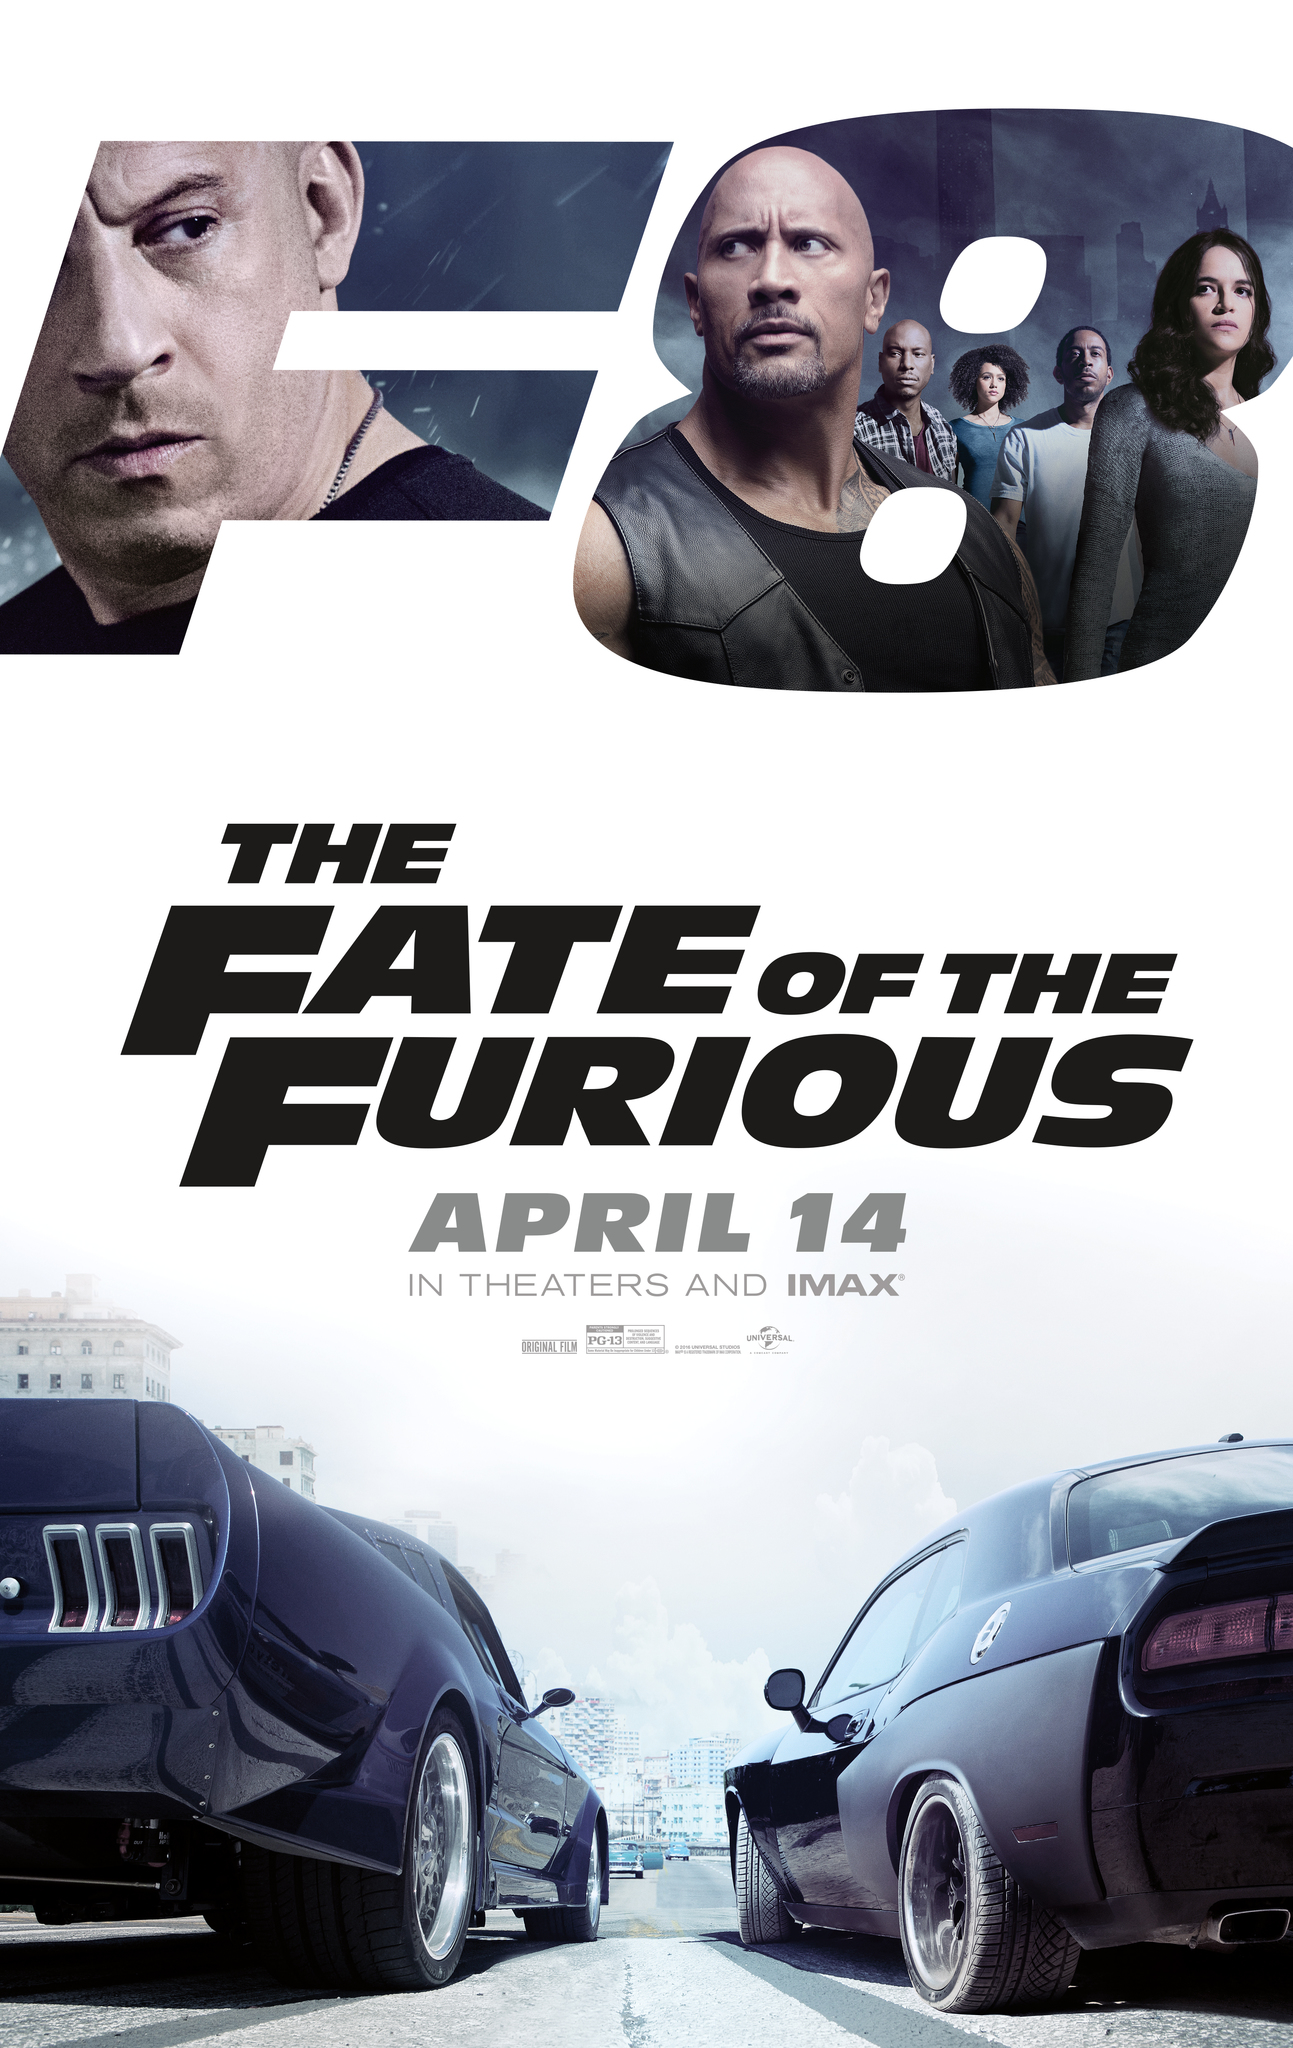 fast and furious 7 full movie hd torrent download in hindi